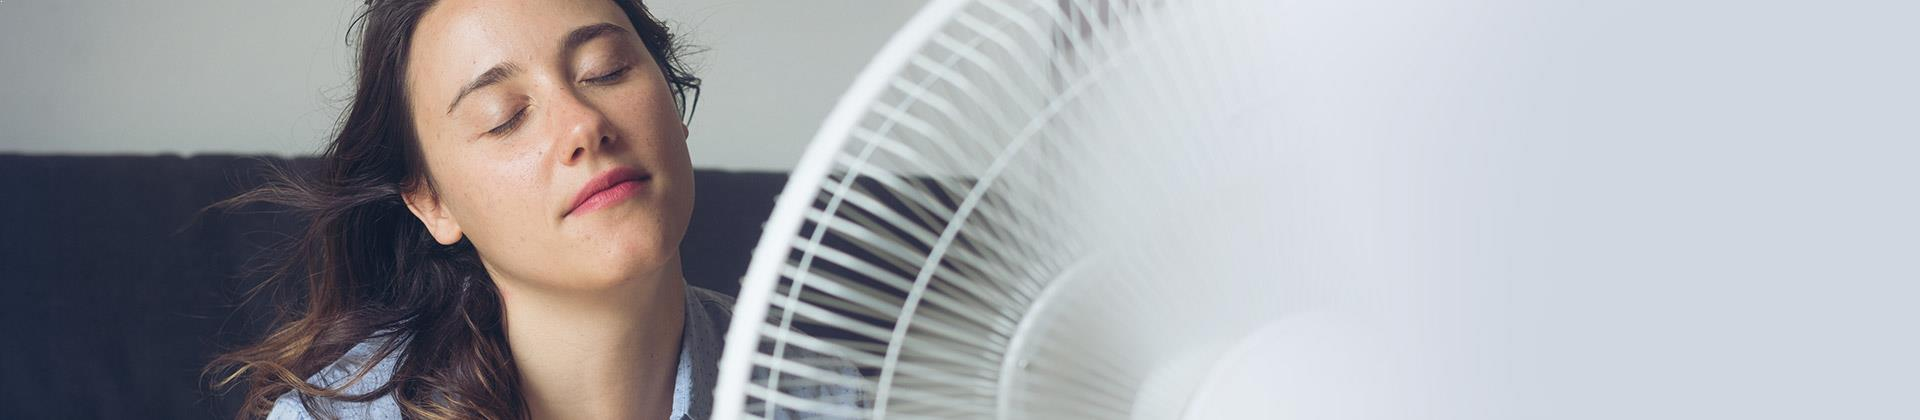 Abco Air Conditioning Service Home Hvac Company